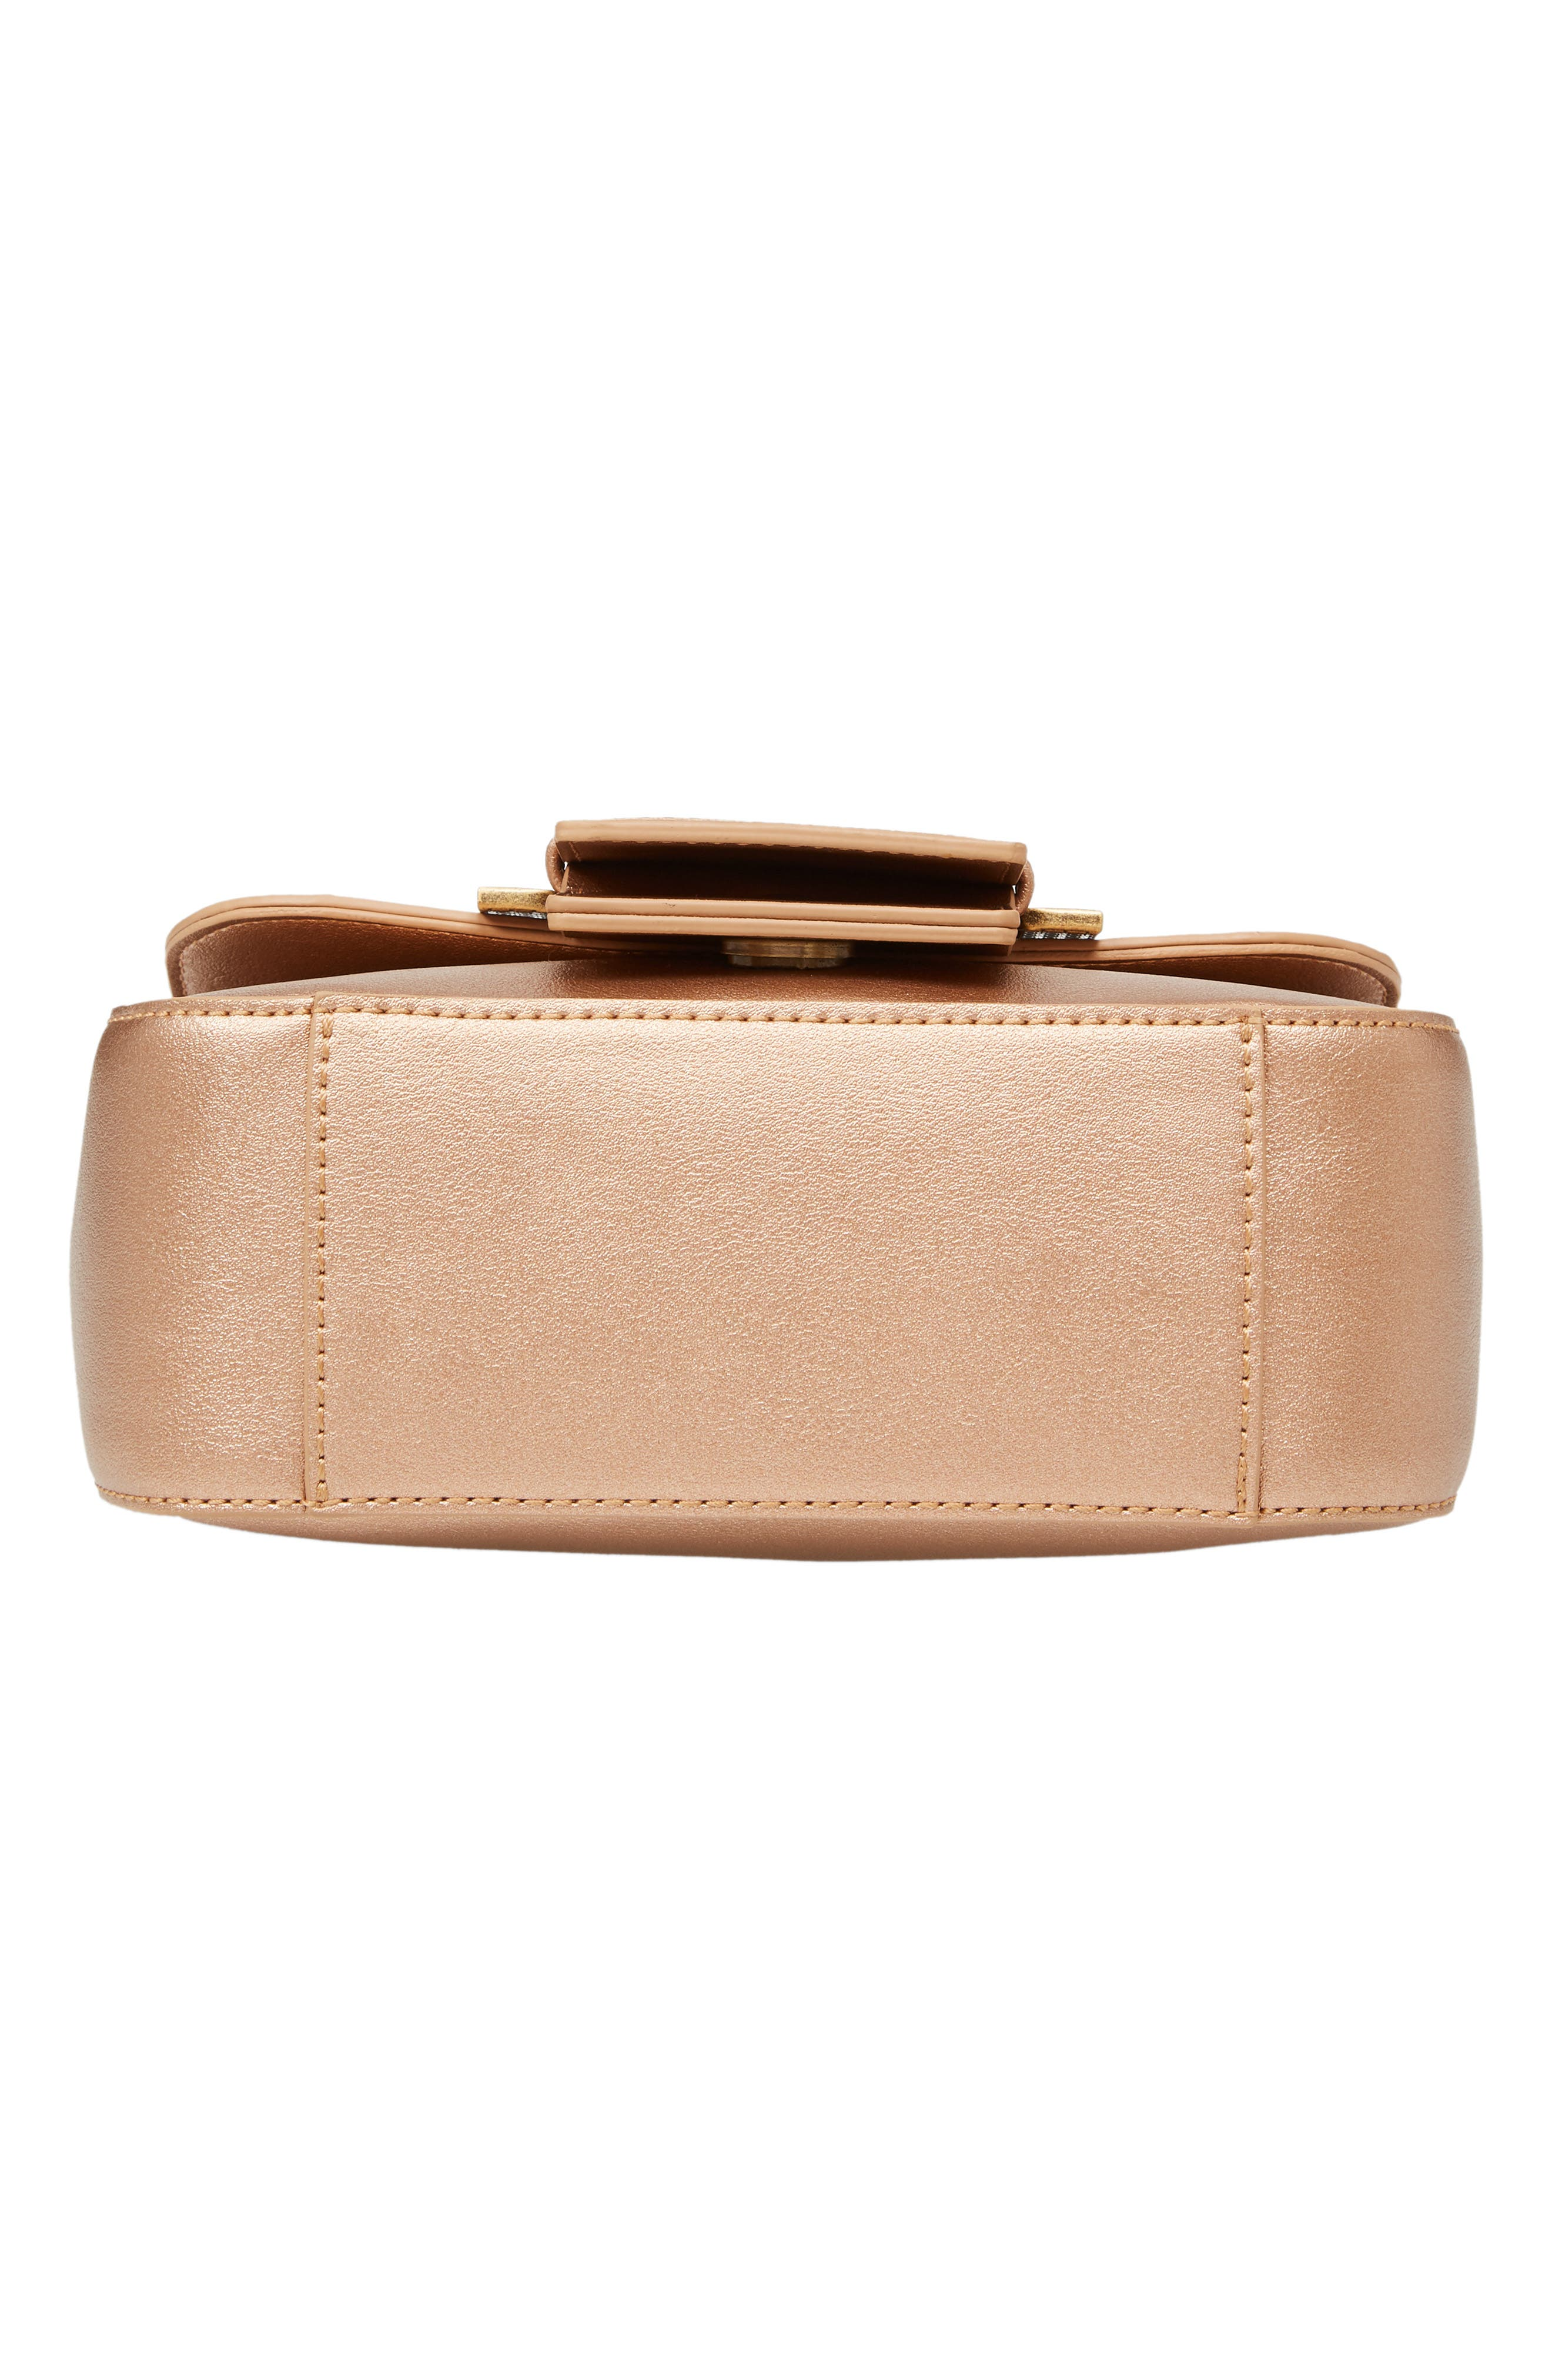 MALIBU SKYE, Oversize Buckle Top Handle Bag, Alternate thumbnail 7, color, ROSE GOLD